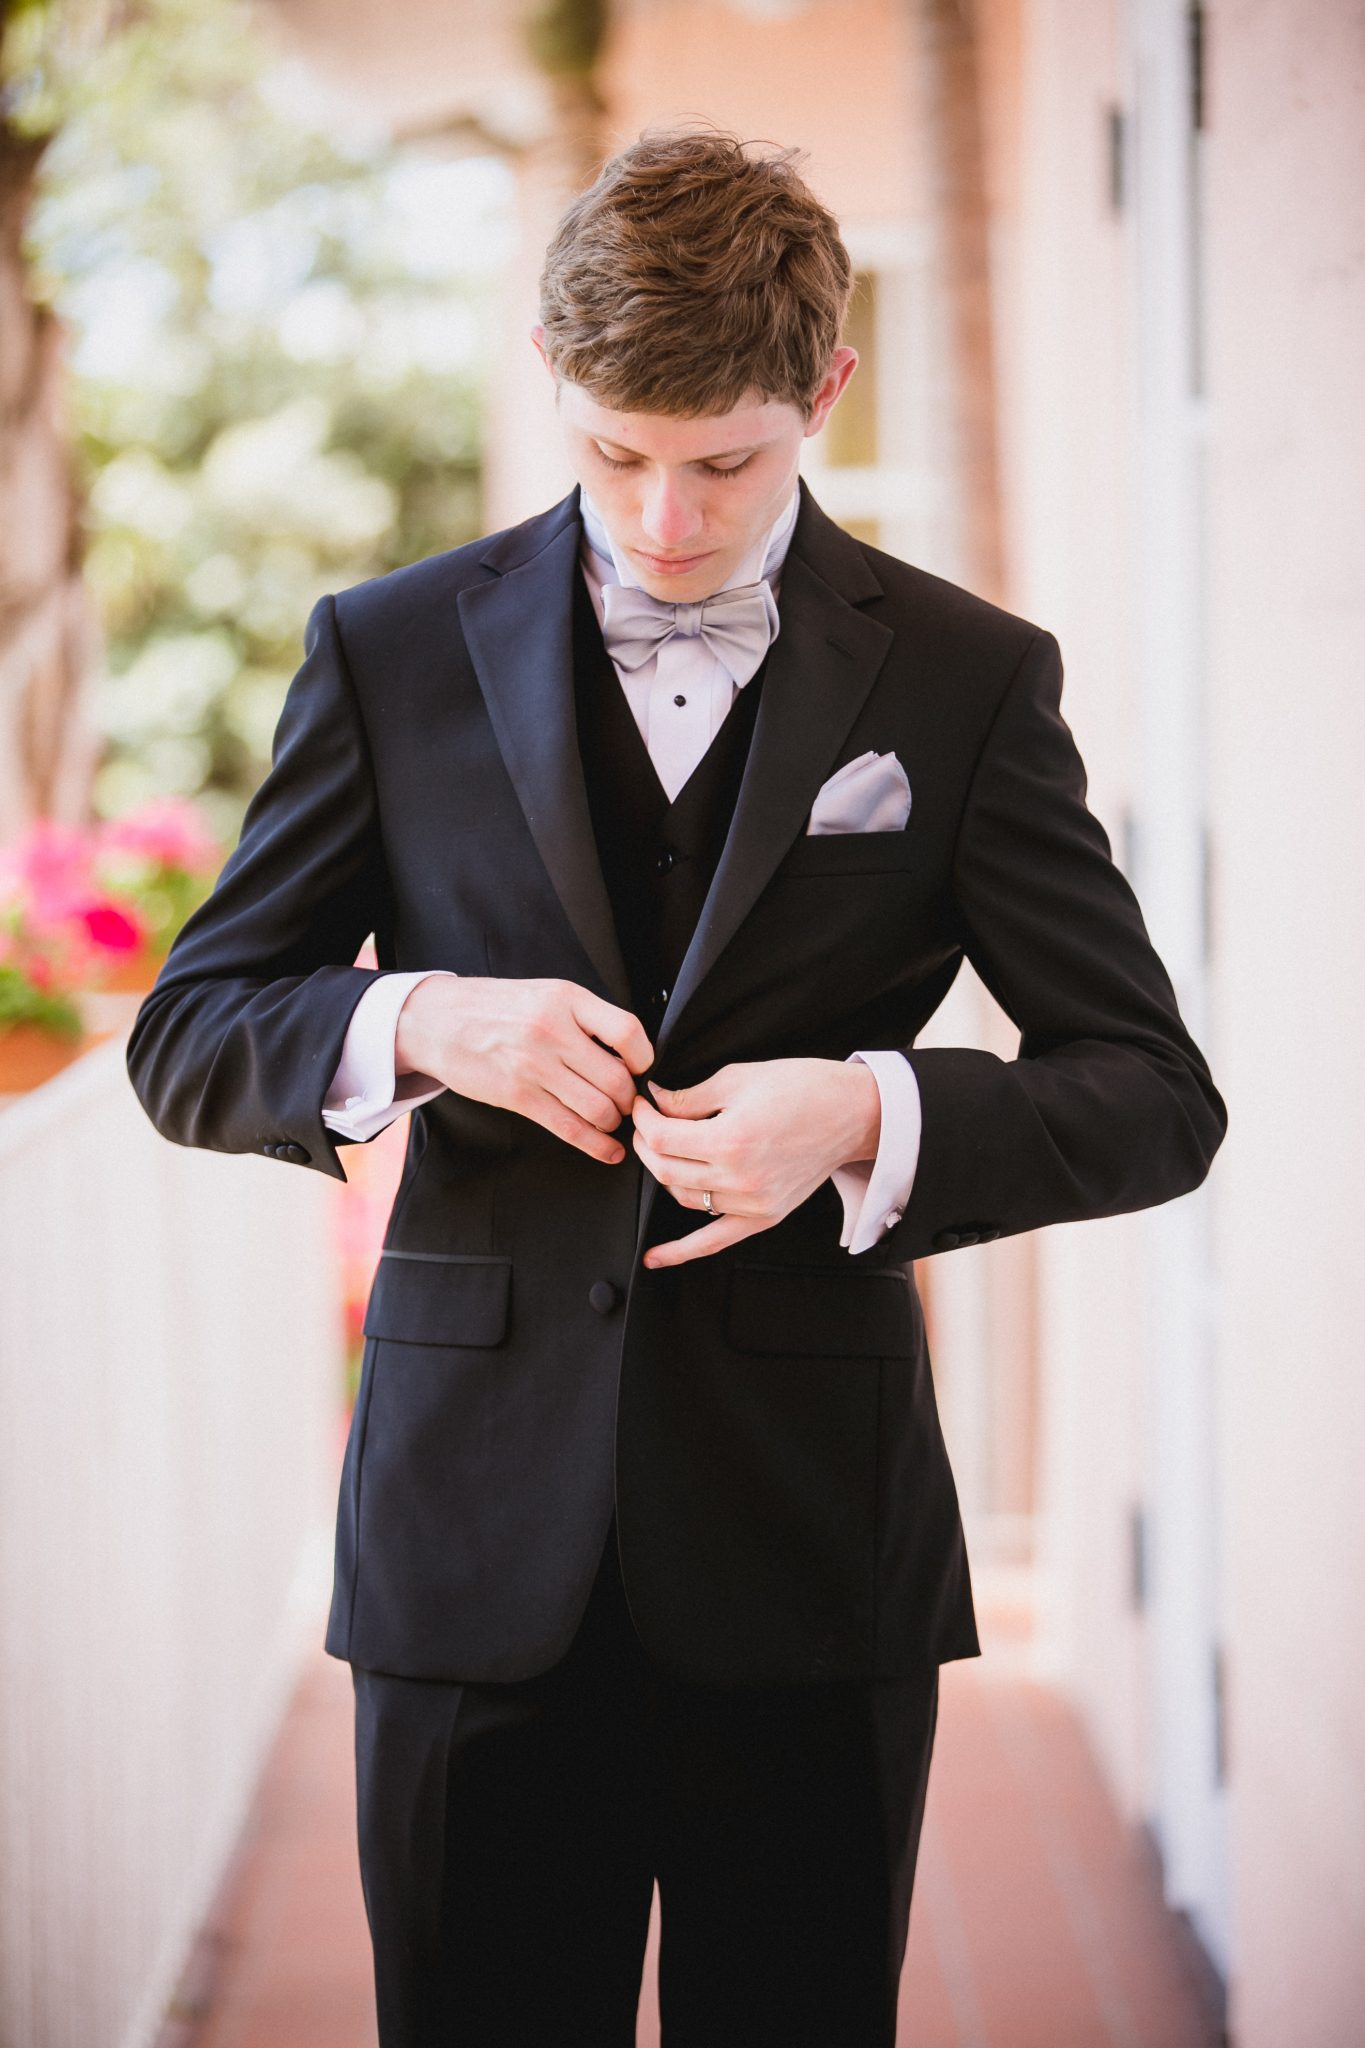 Groom buttoning up his black suit jacket before the wedding ceremony